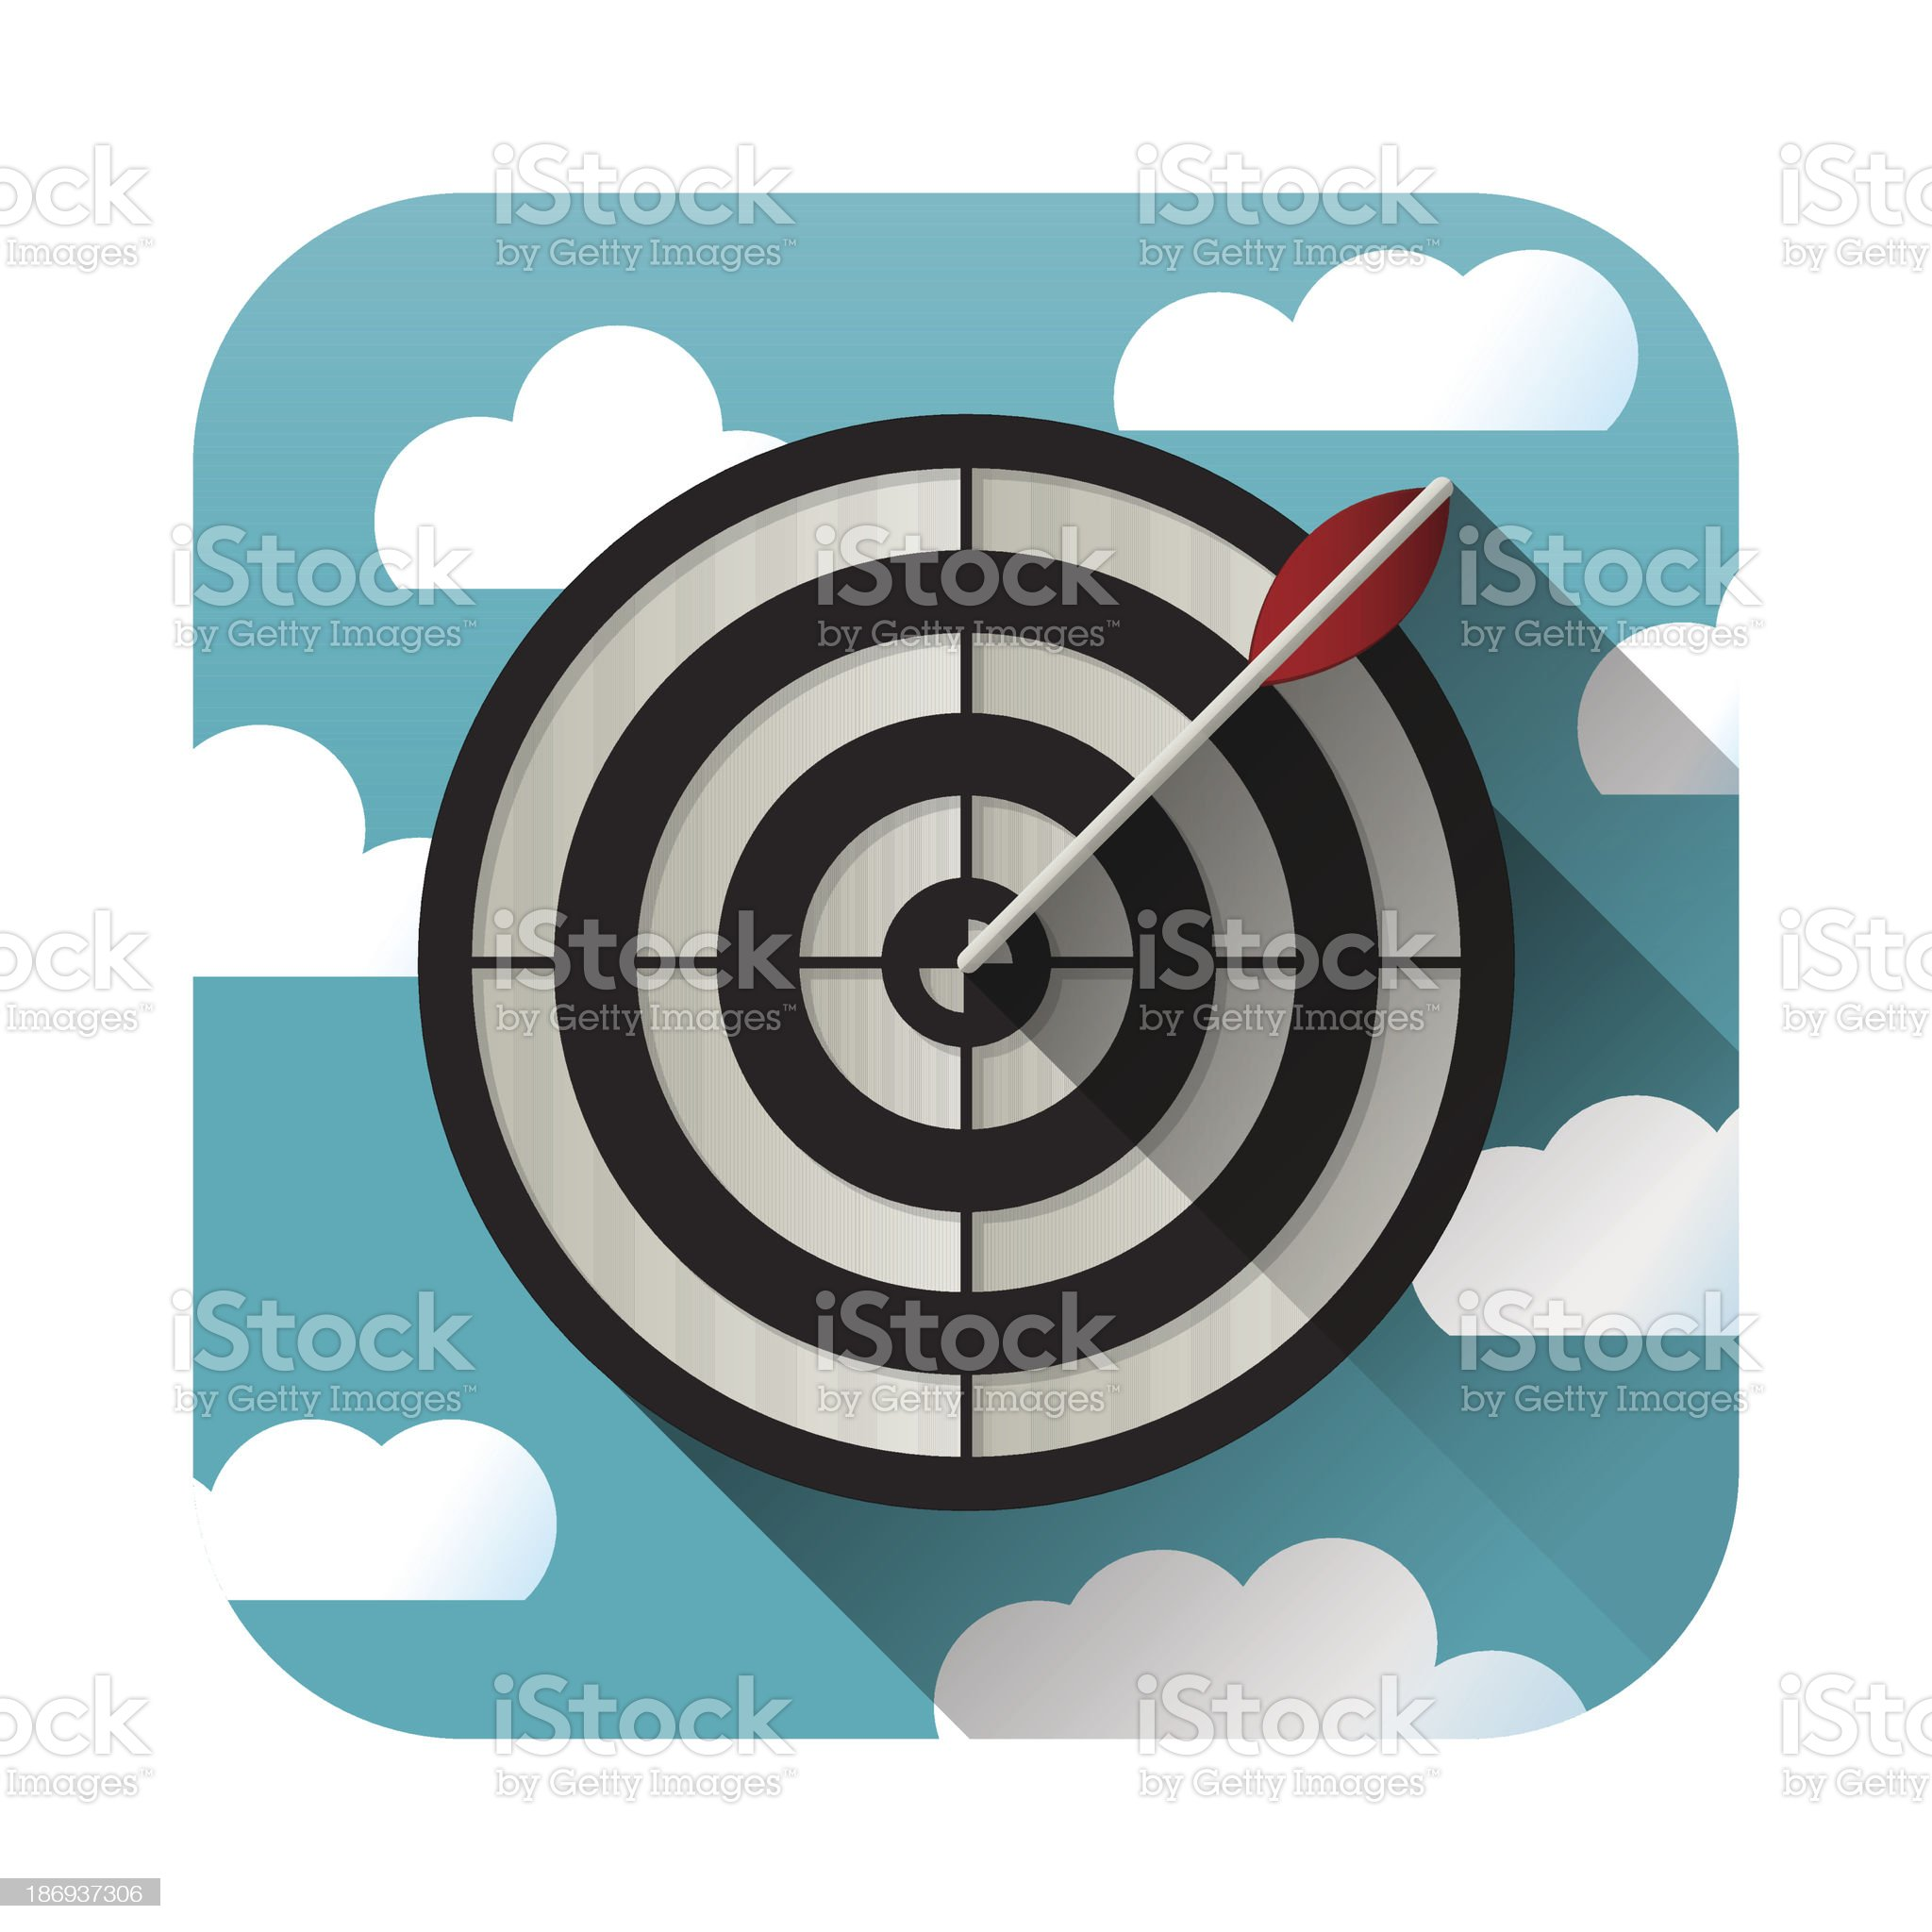 Target practice icon royalty-free stock vector art